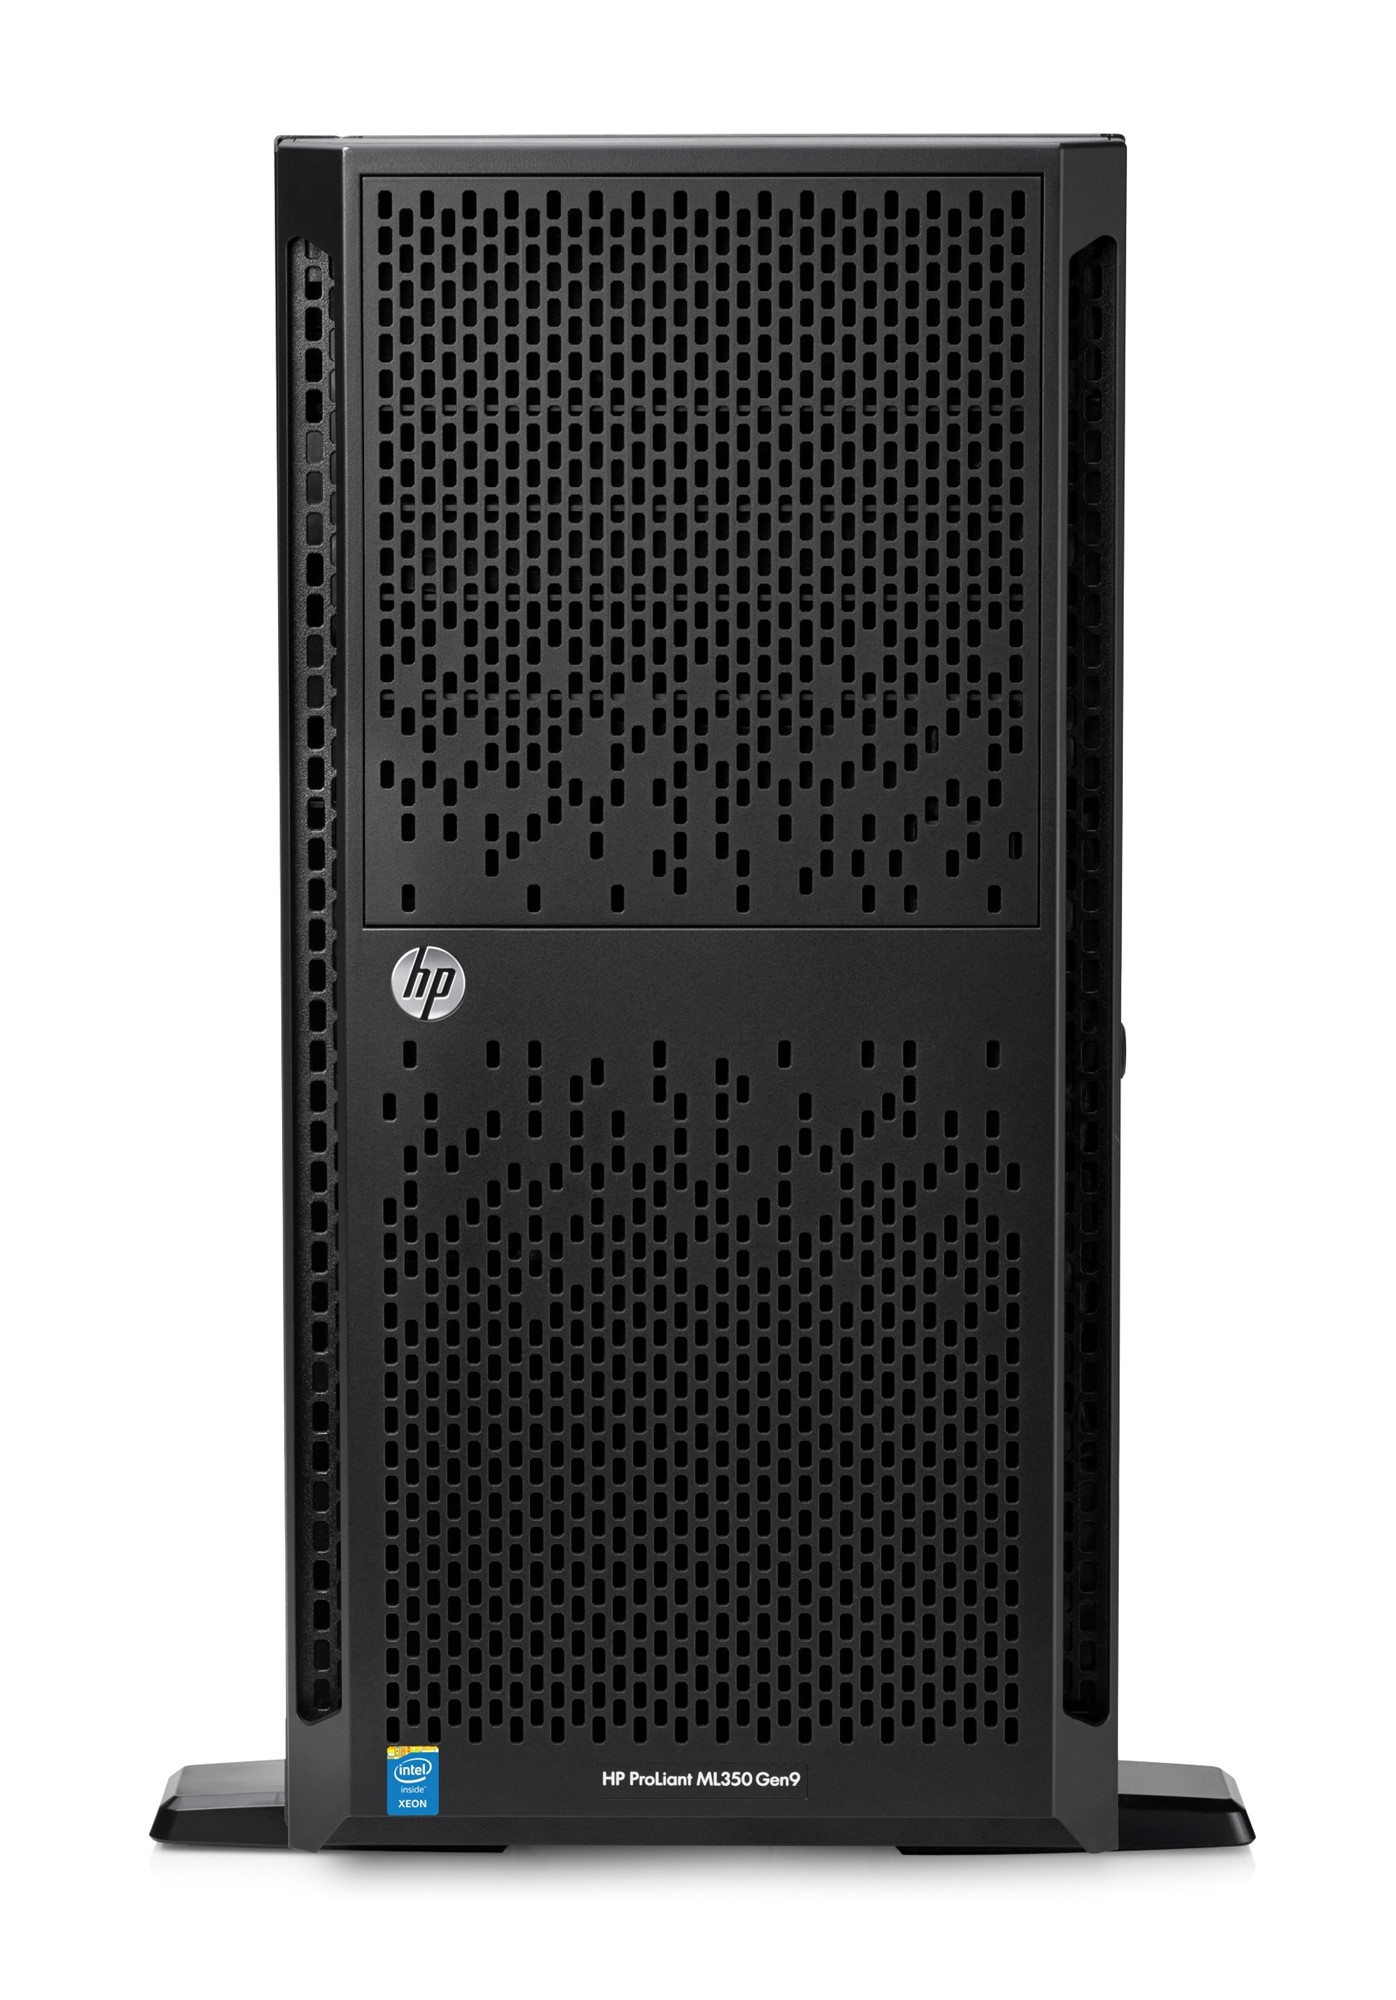 HPE 835265-031 PROLIANT ML350 GEN9 2.2GHZ E5-2650V4 800W TOWER (5U) SERVER